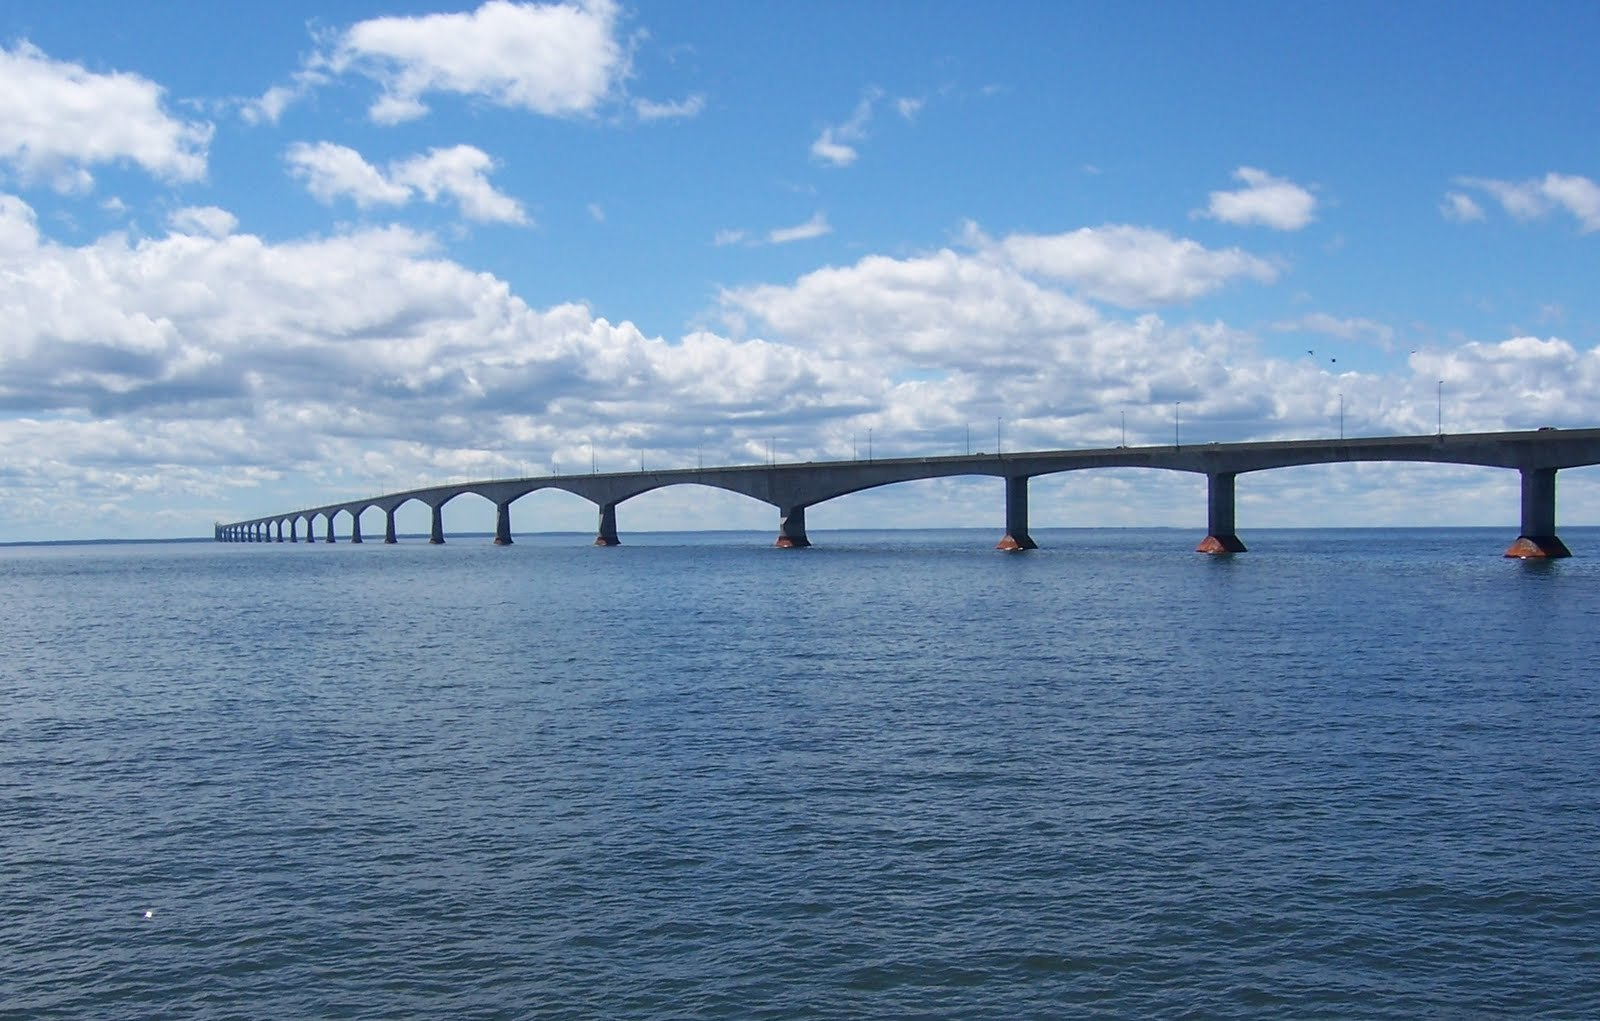 confederation Bridge pei oups HD Wallpaper